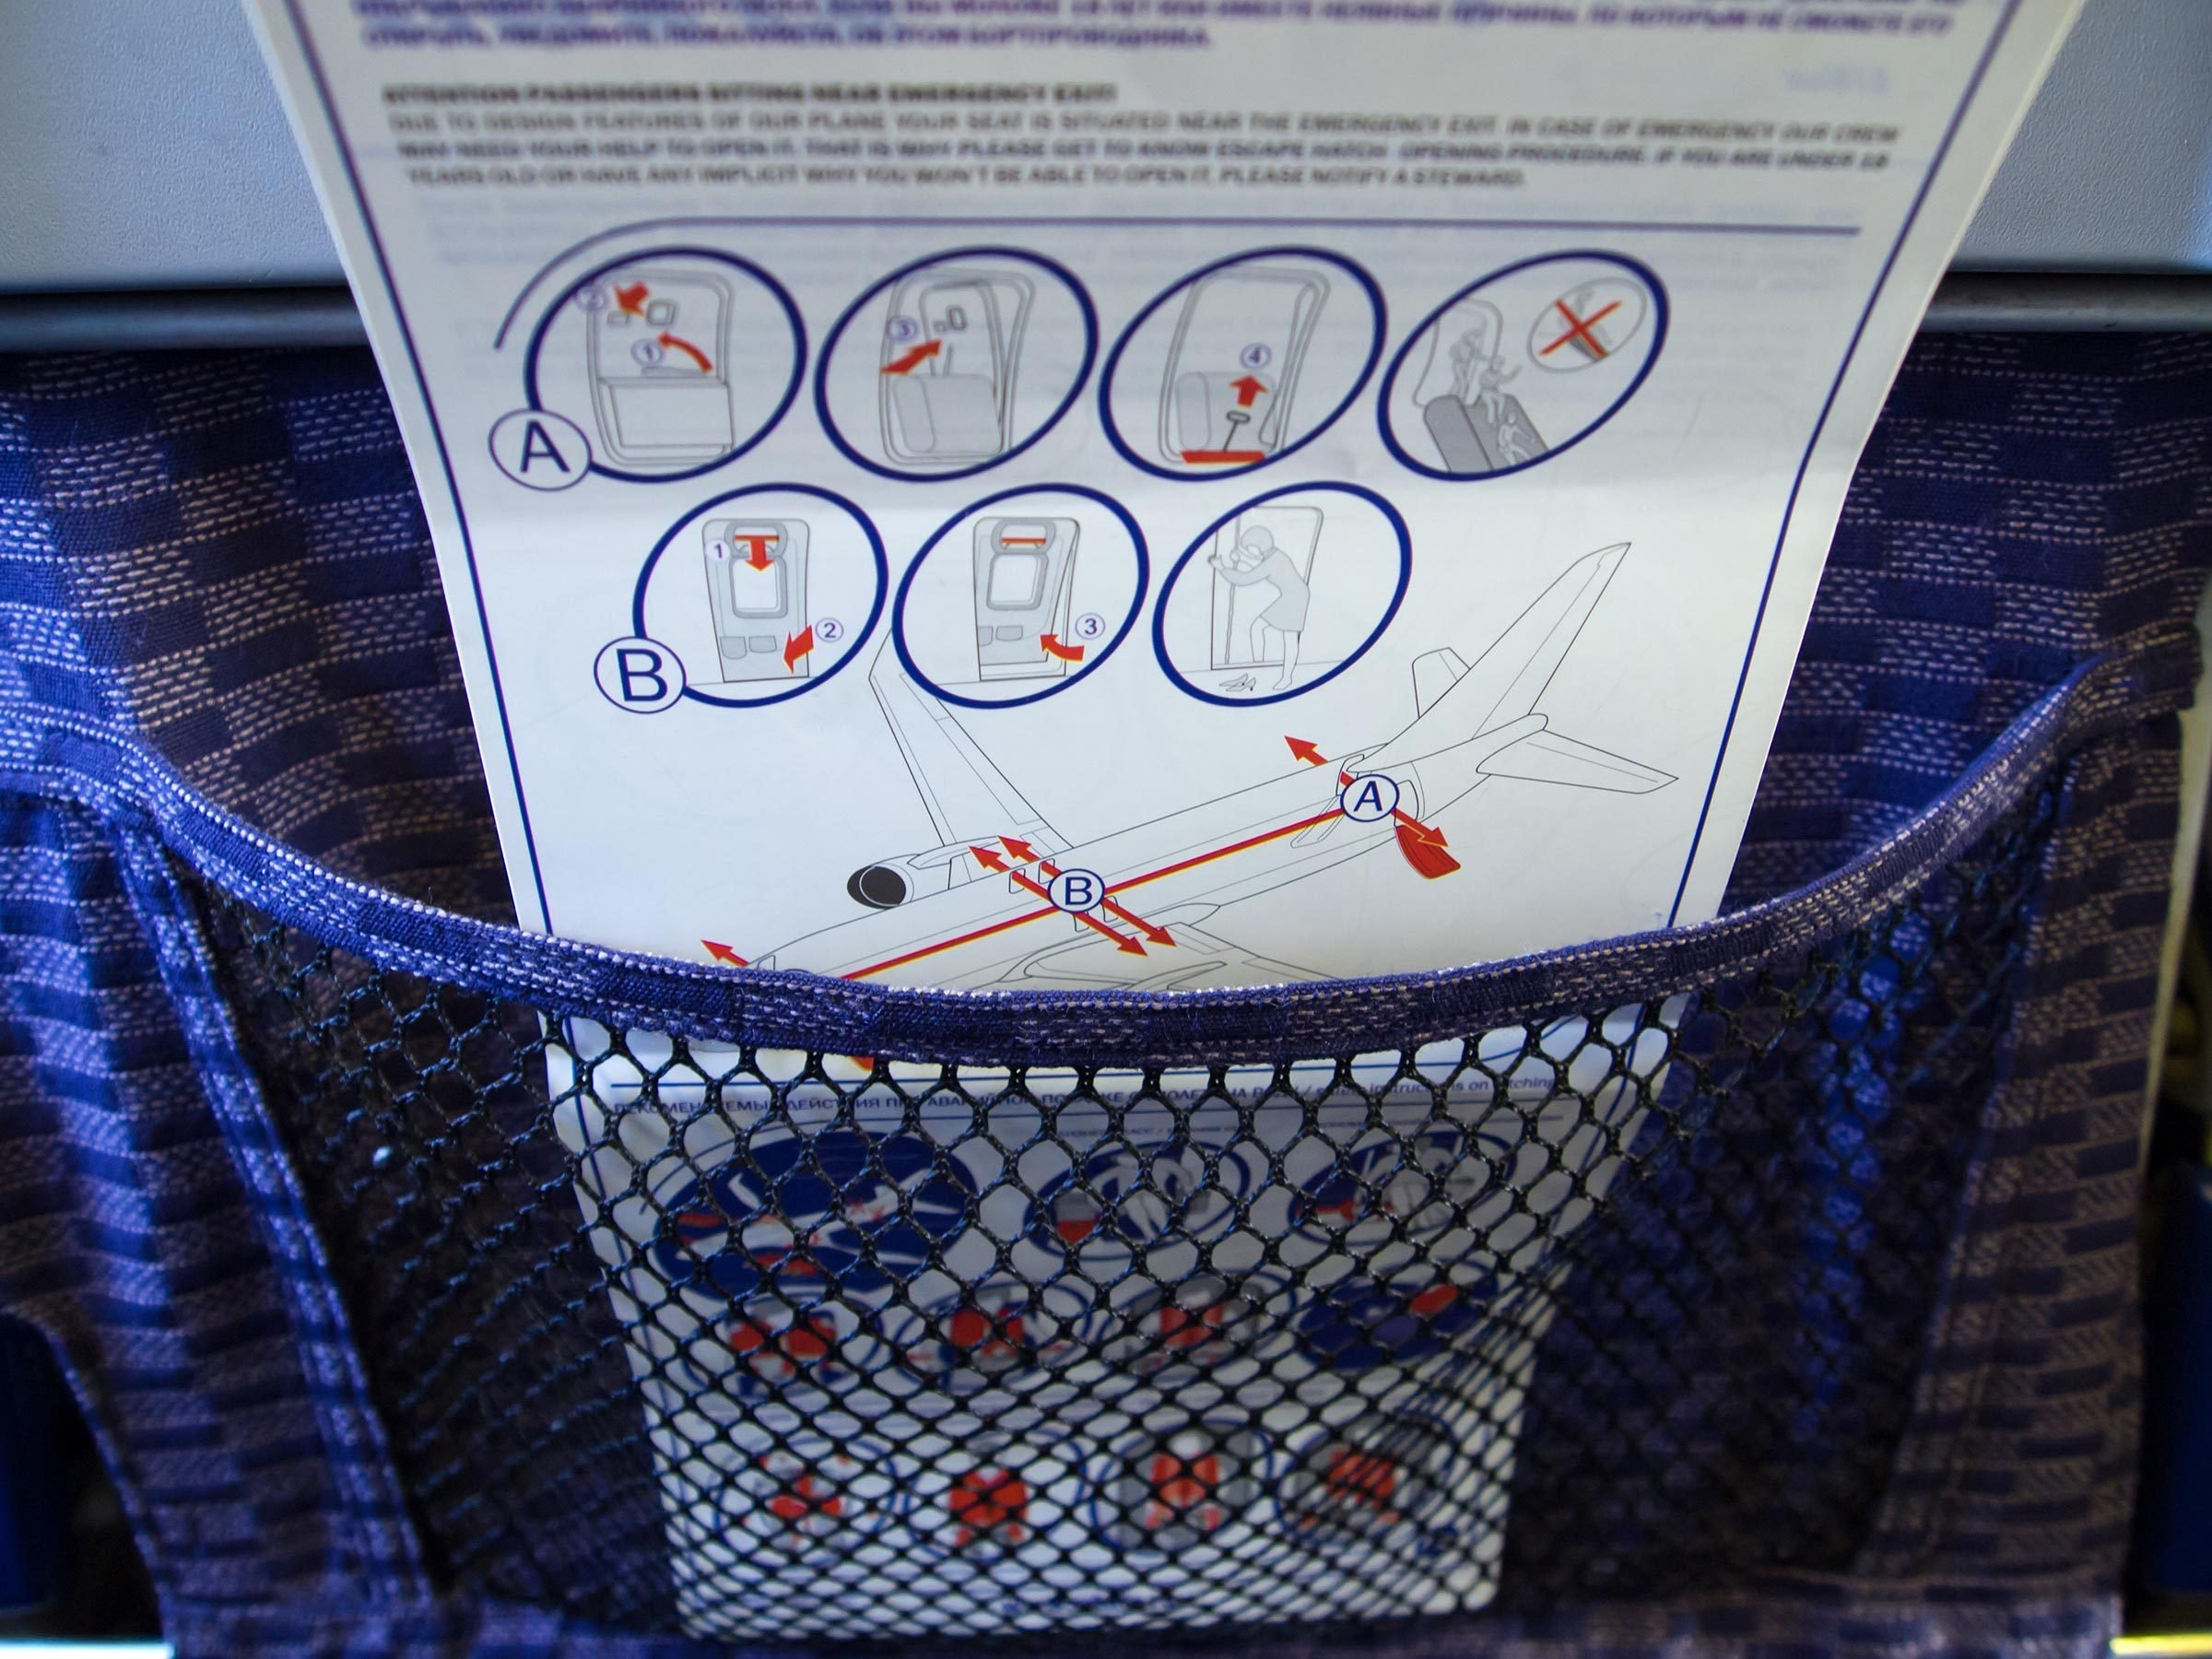 Safety instructions in the pocket of an airplane chair